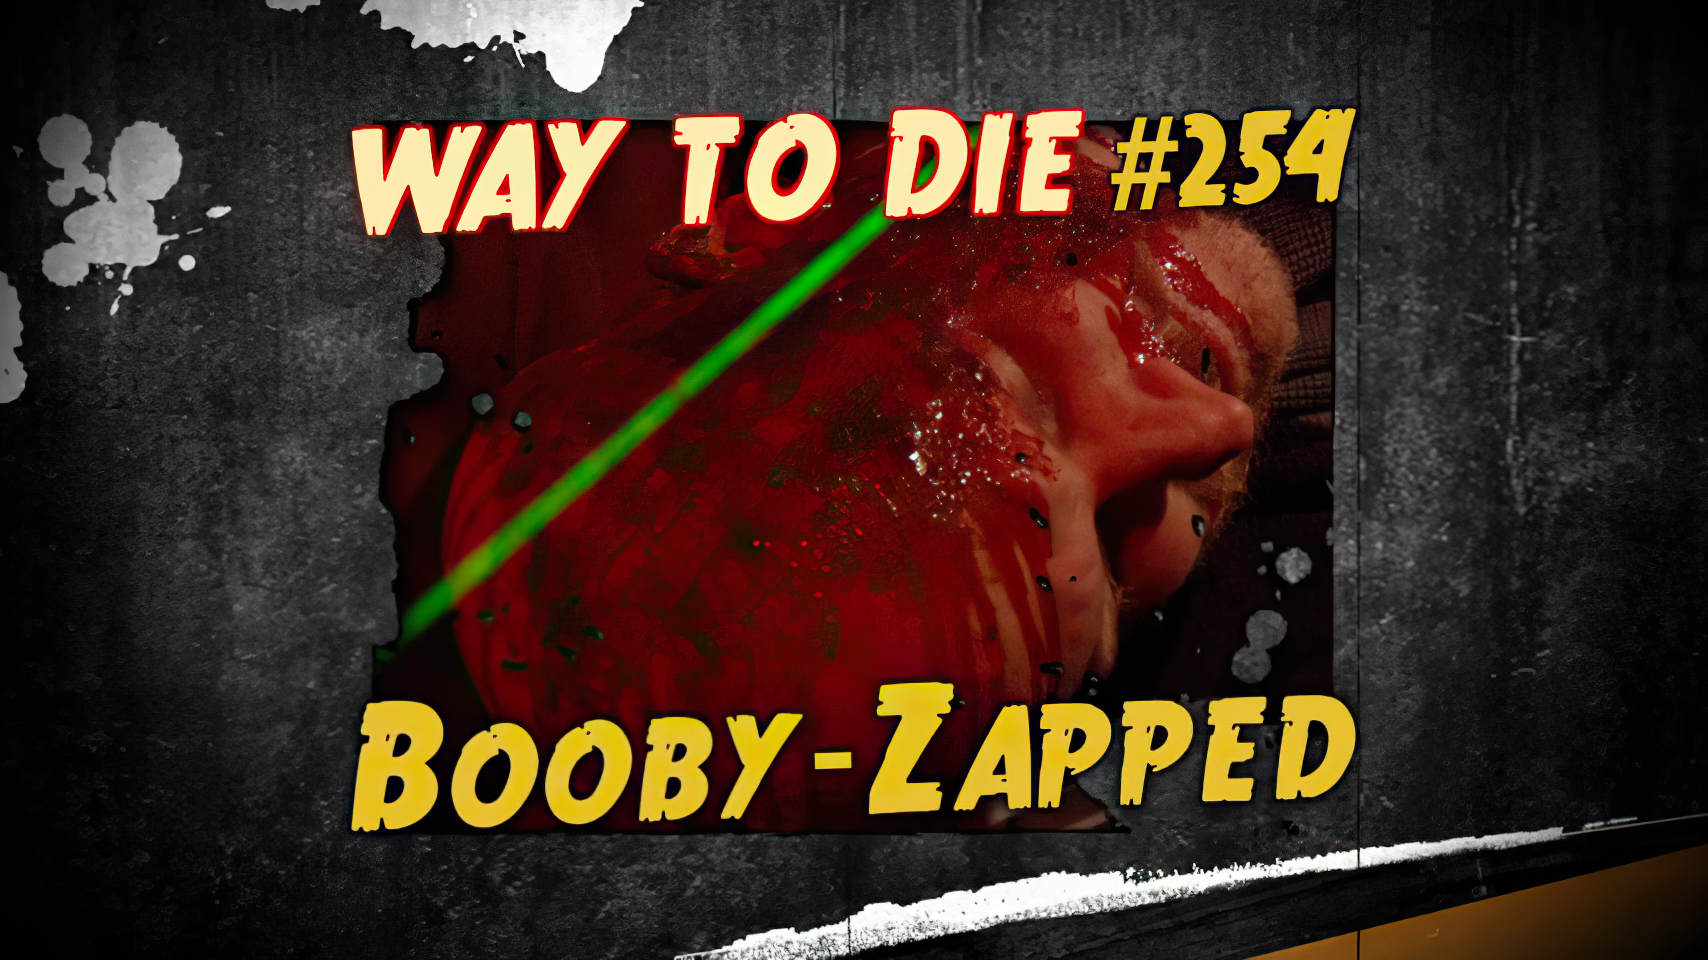 Booby-Zapped